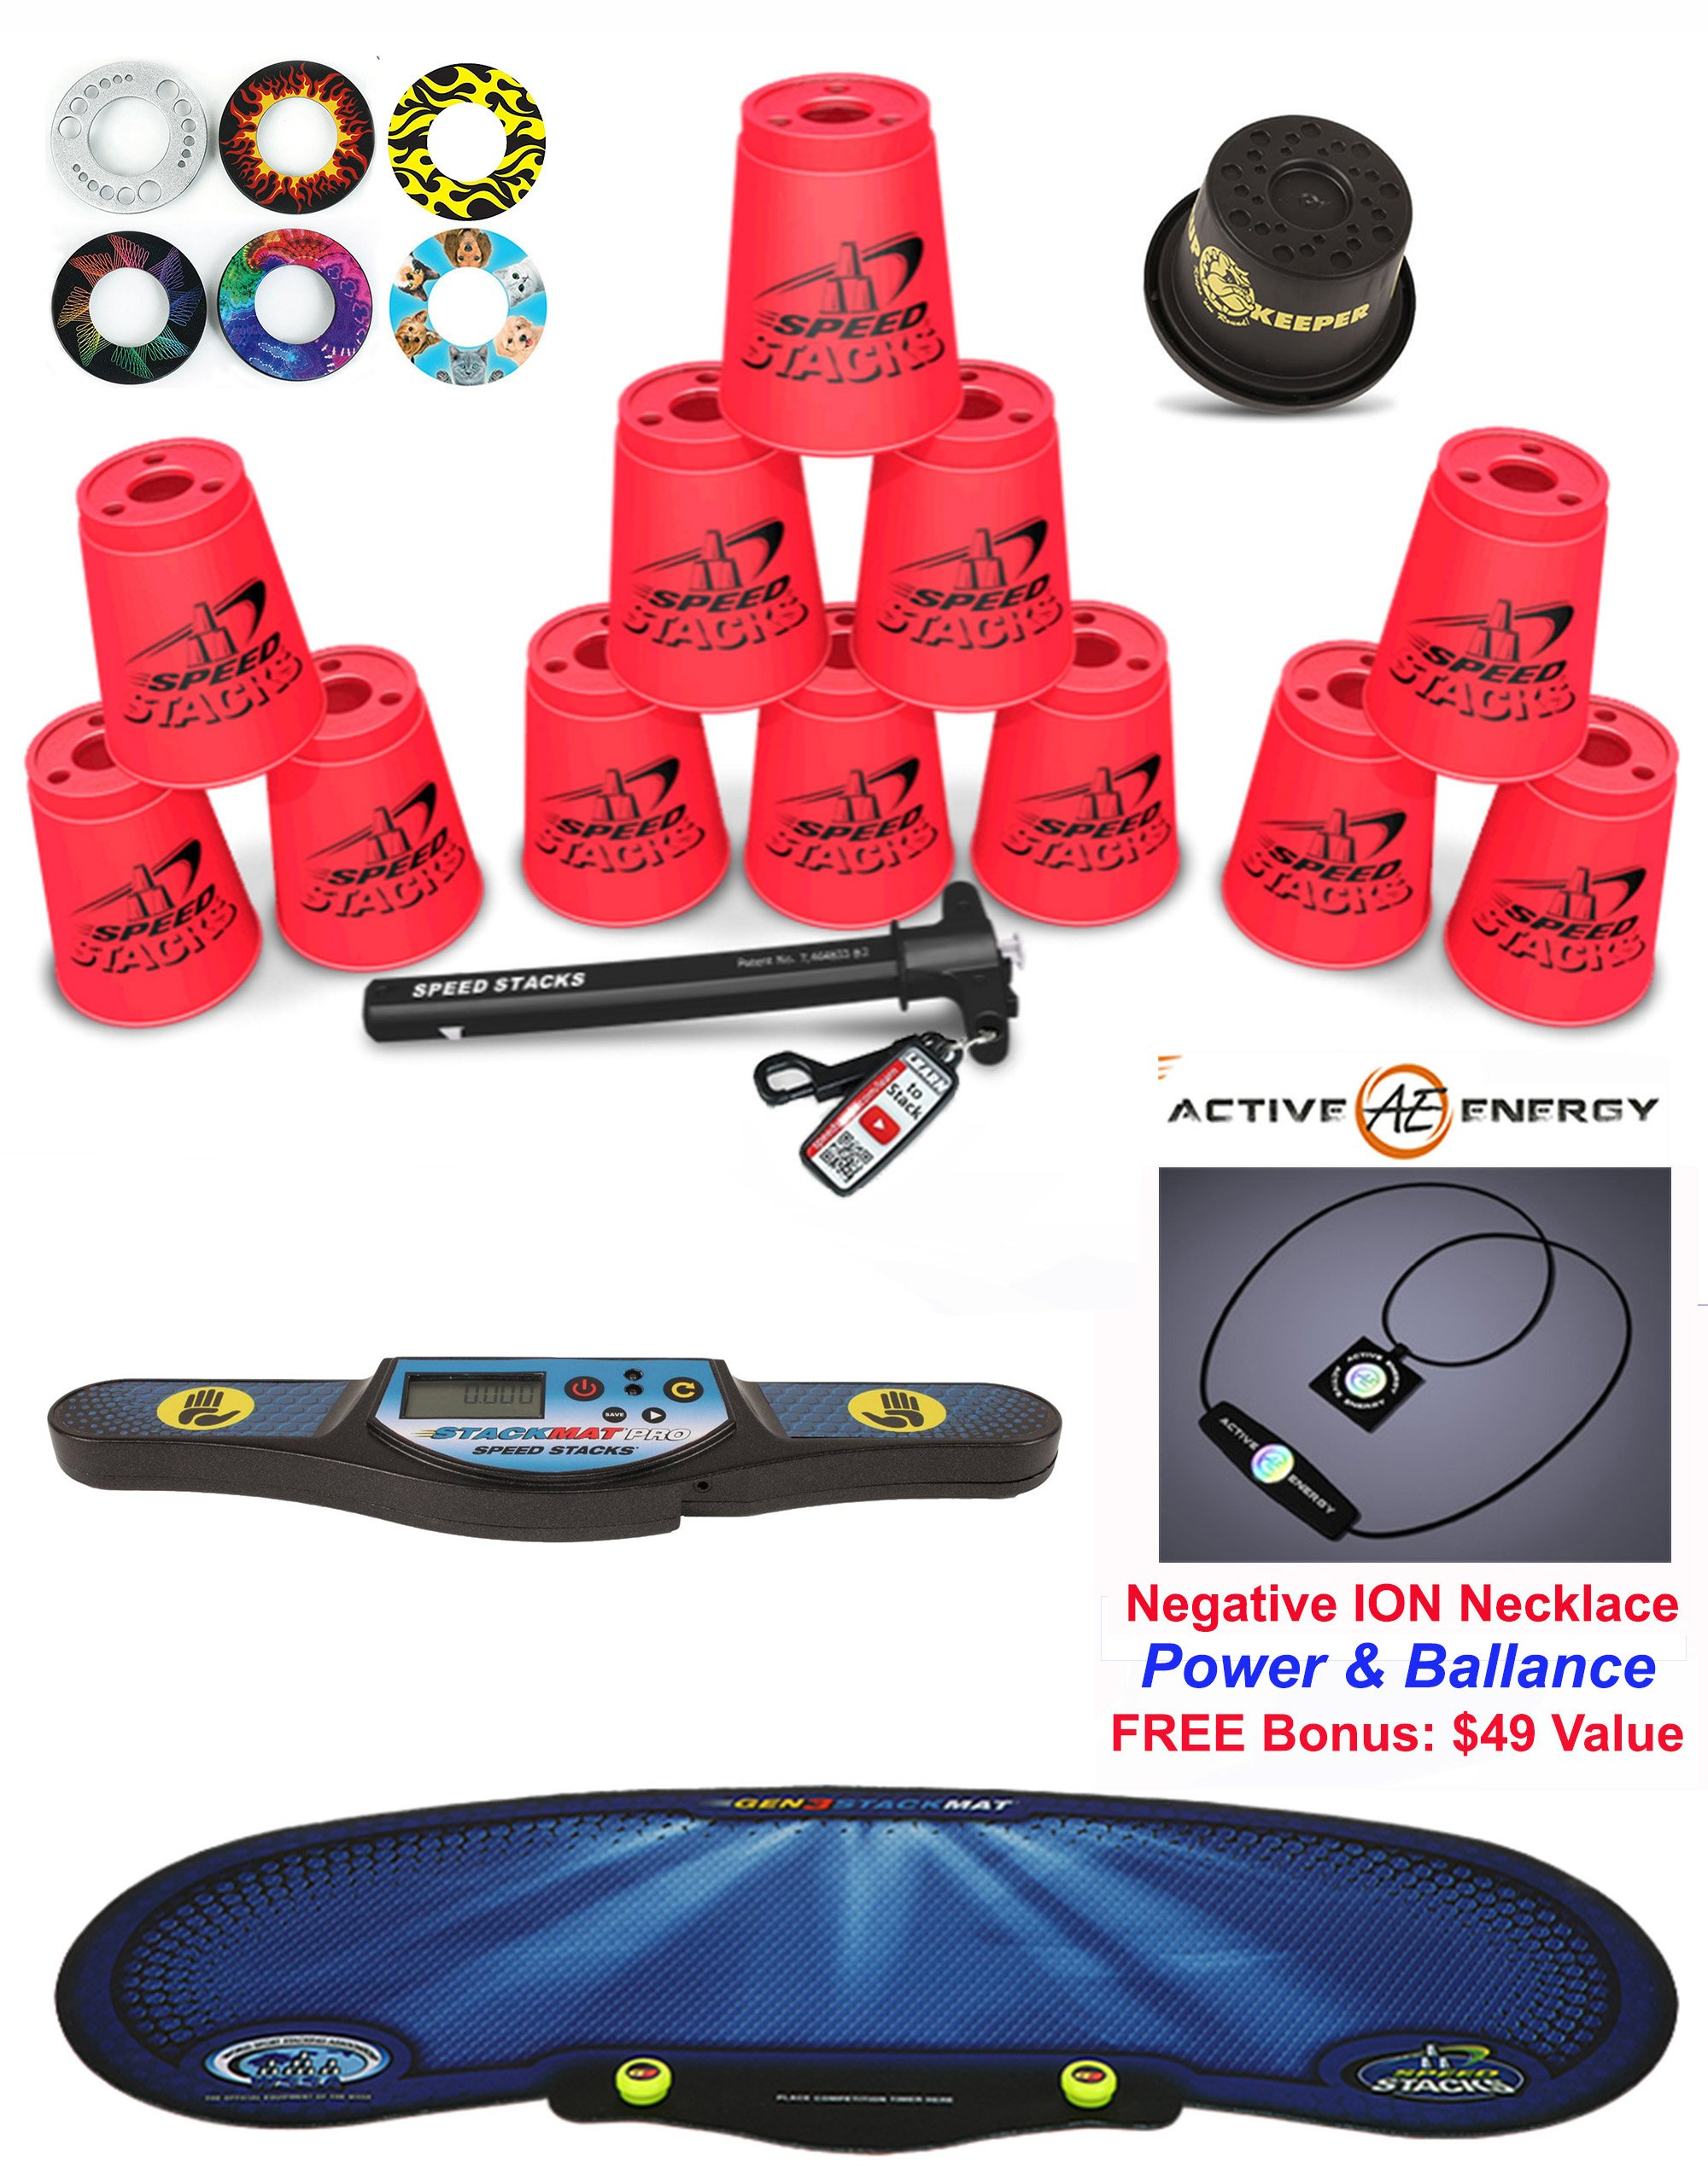 Speed Stacks Custom Combo Set: 12 PINK Cups, Cup Keeper, Quick Release Stem, Pro Timer, Gen3 Mat, 6 Snap Tops + FREE Bonus: Active Energy Power & Balance Necklace $49 Value